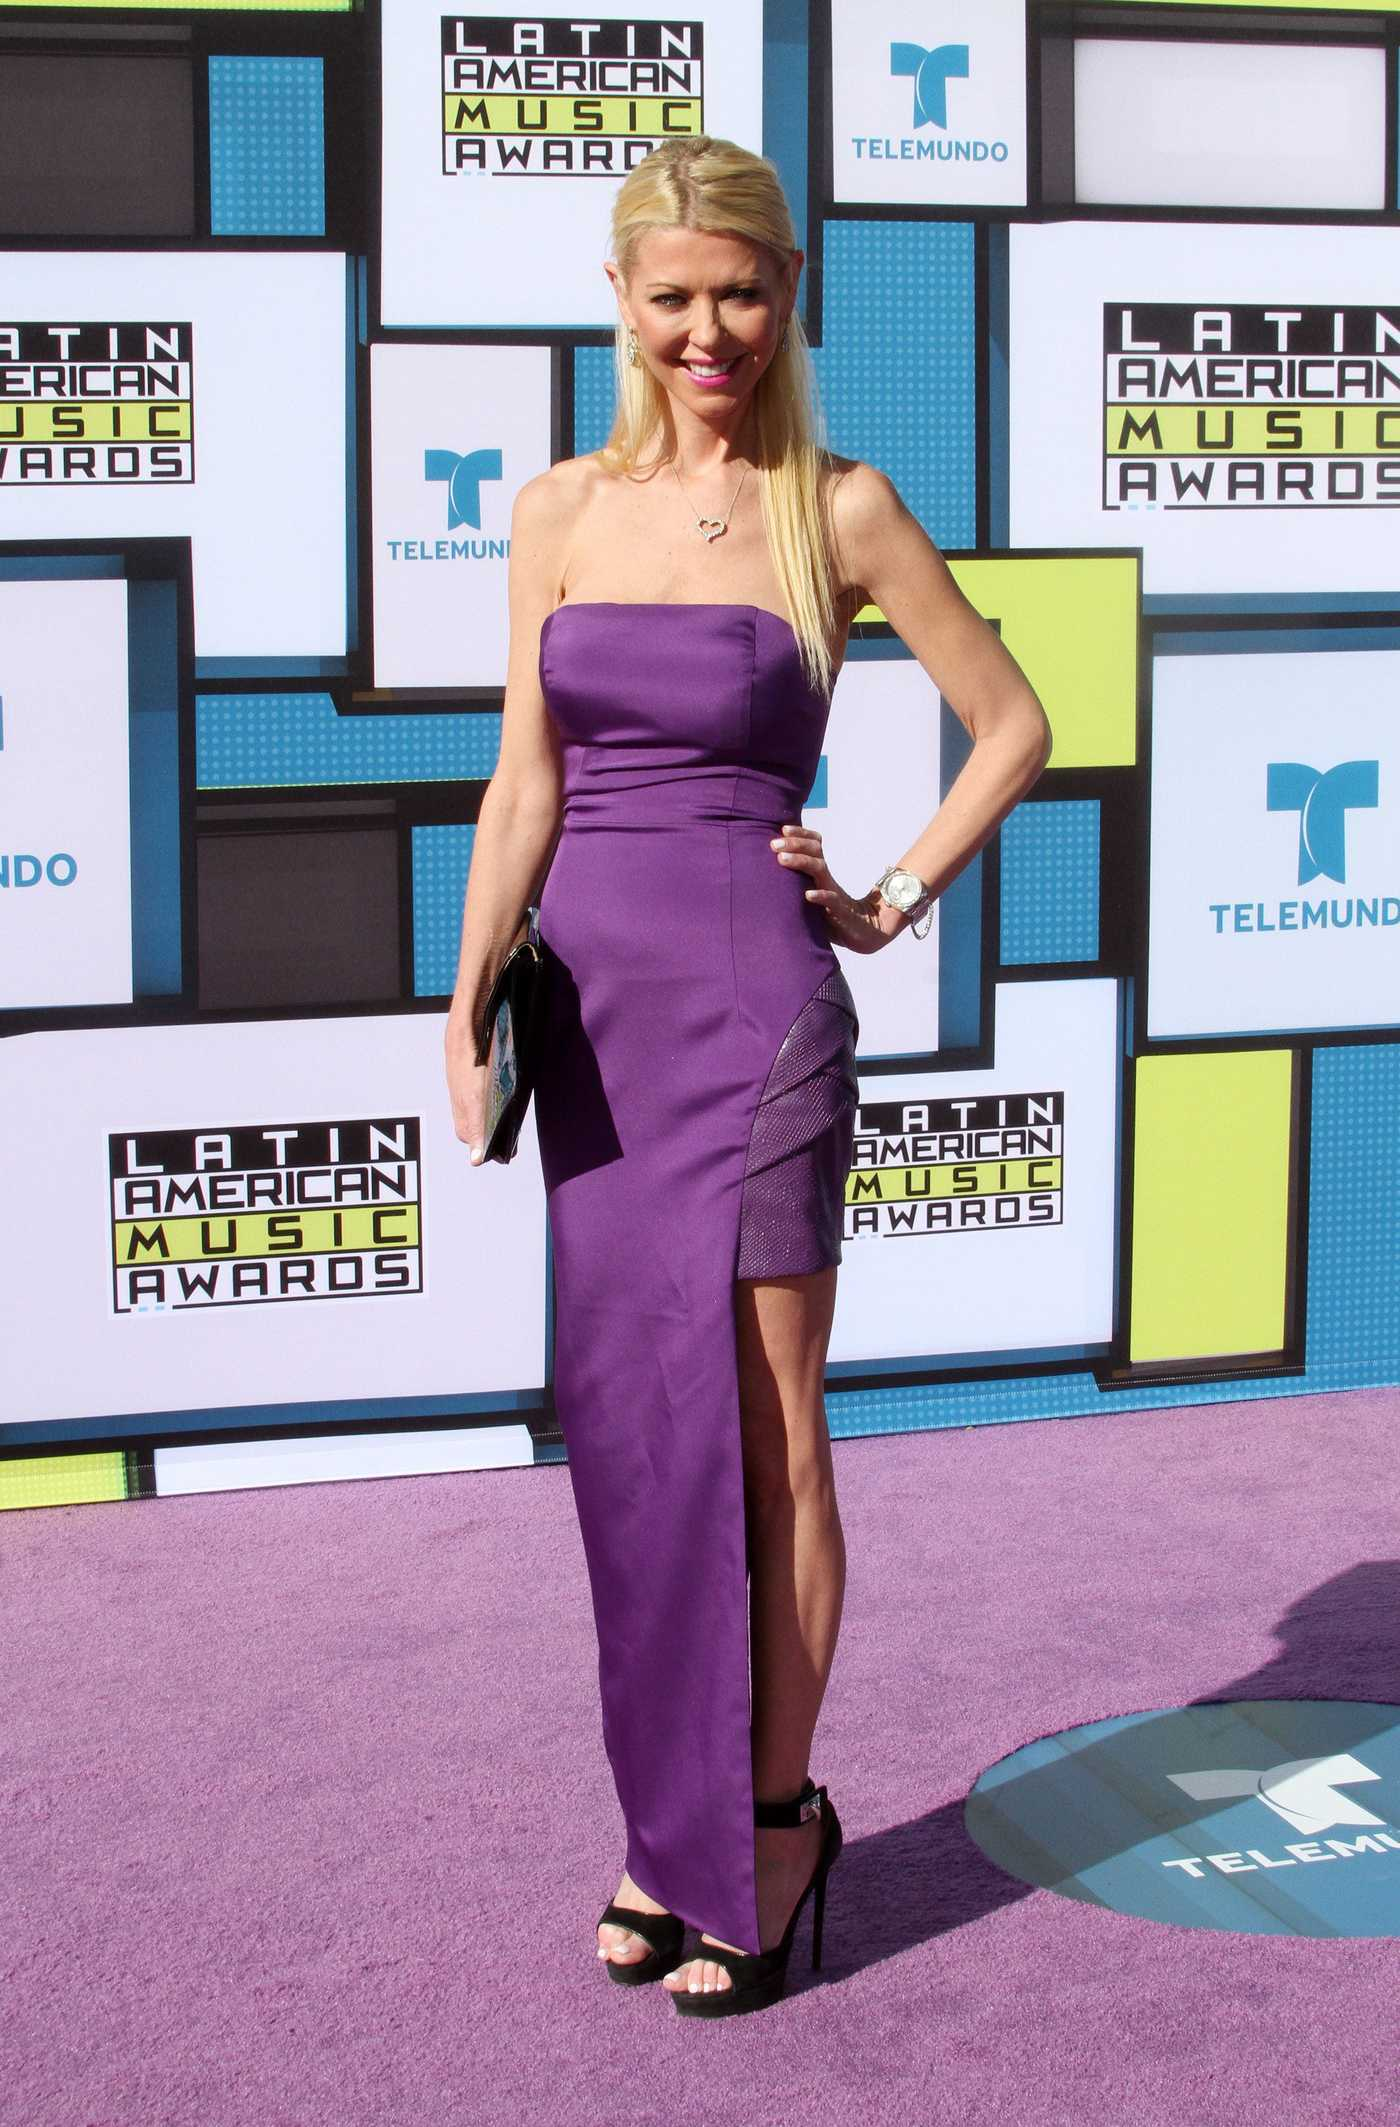 Tara Reid at the 2016 Latin American Music Awards in Los Angeles 10/06/2016